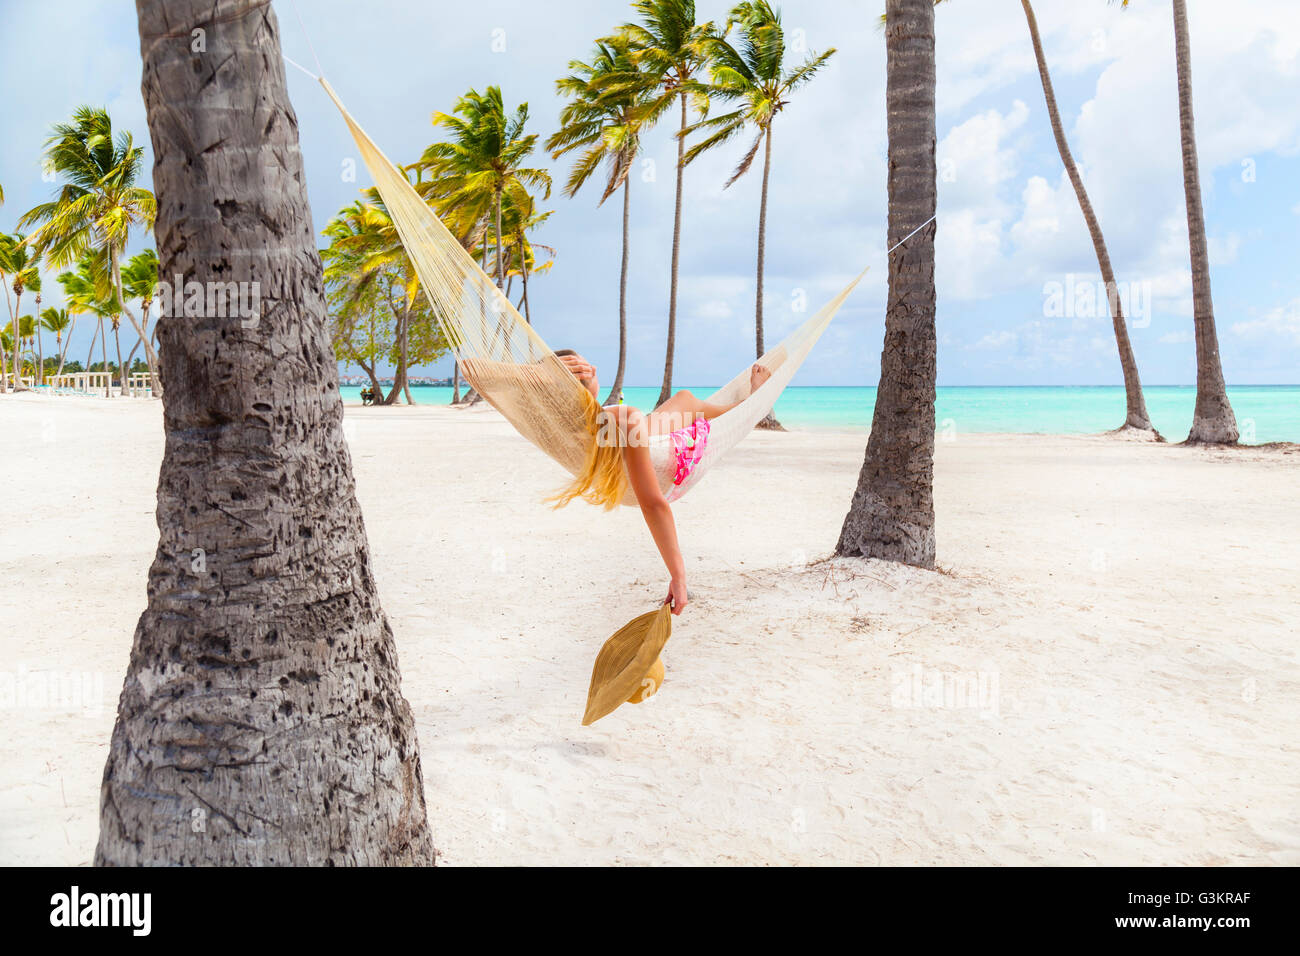 Young woman sunbathing in palm tree hammock at beach, Dominican Republic, The Caribbean - Stock Image